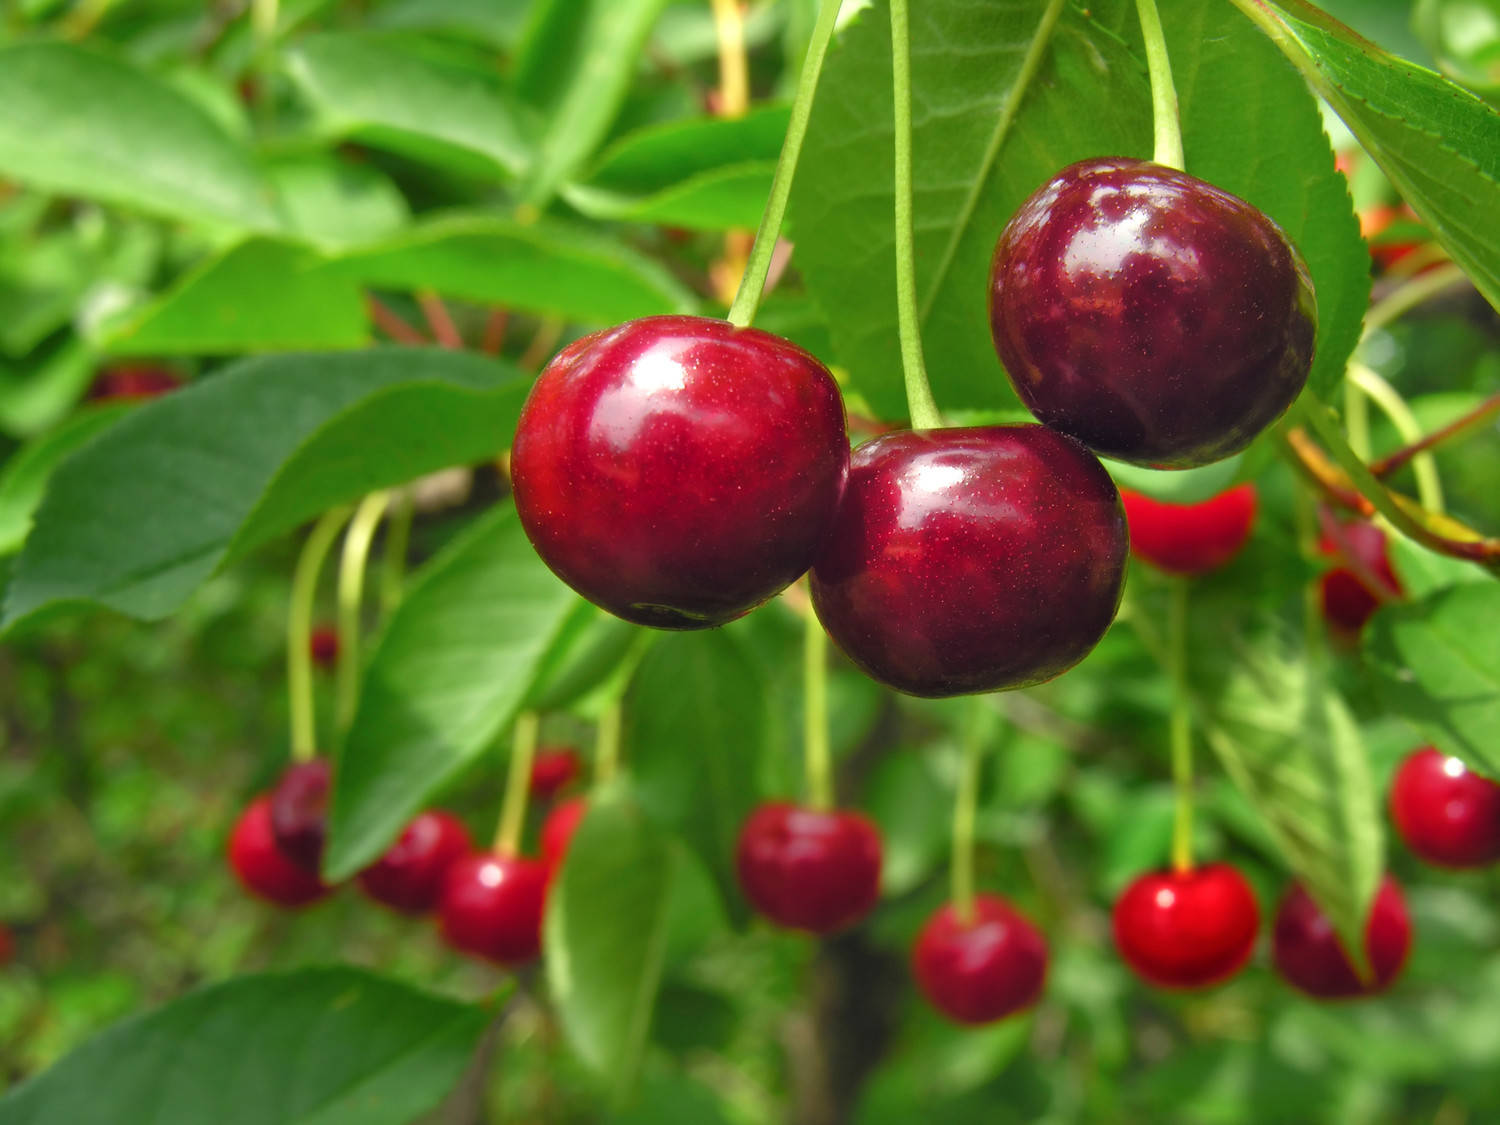 Acerola belongs to the tropical fruit-bearing shrubs in the family Malpighiaceae and contains 2-3 tiny seeds.